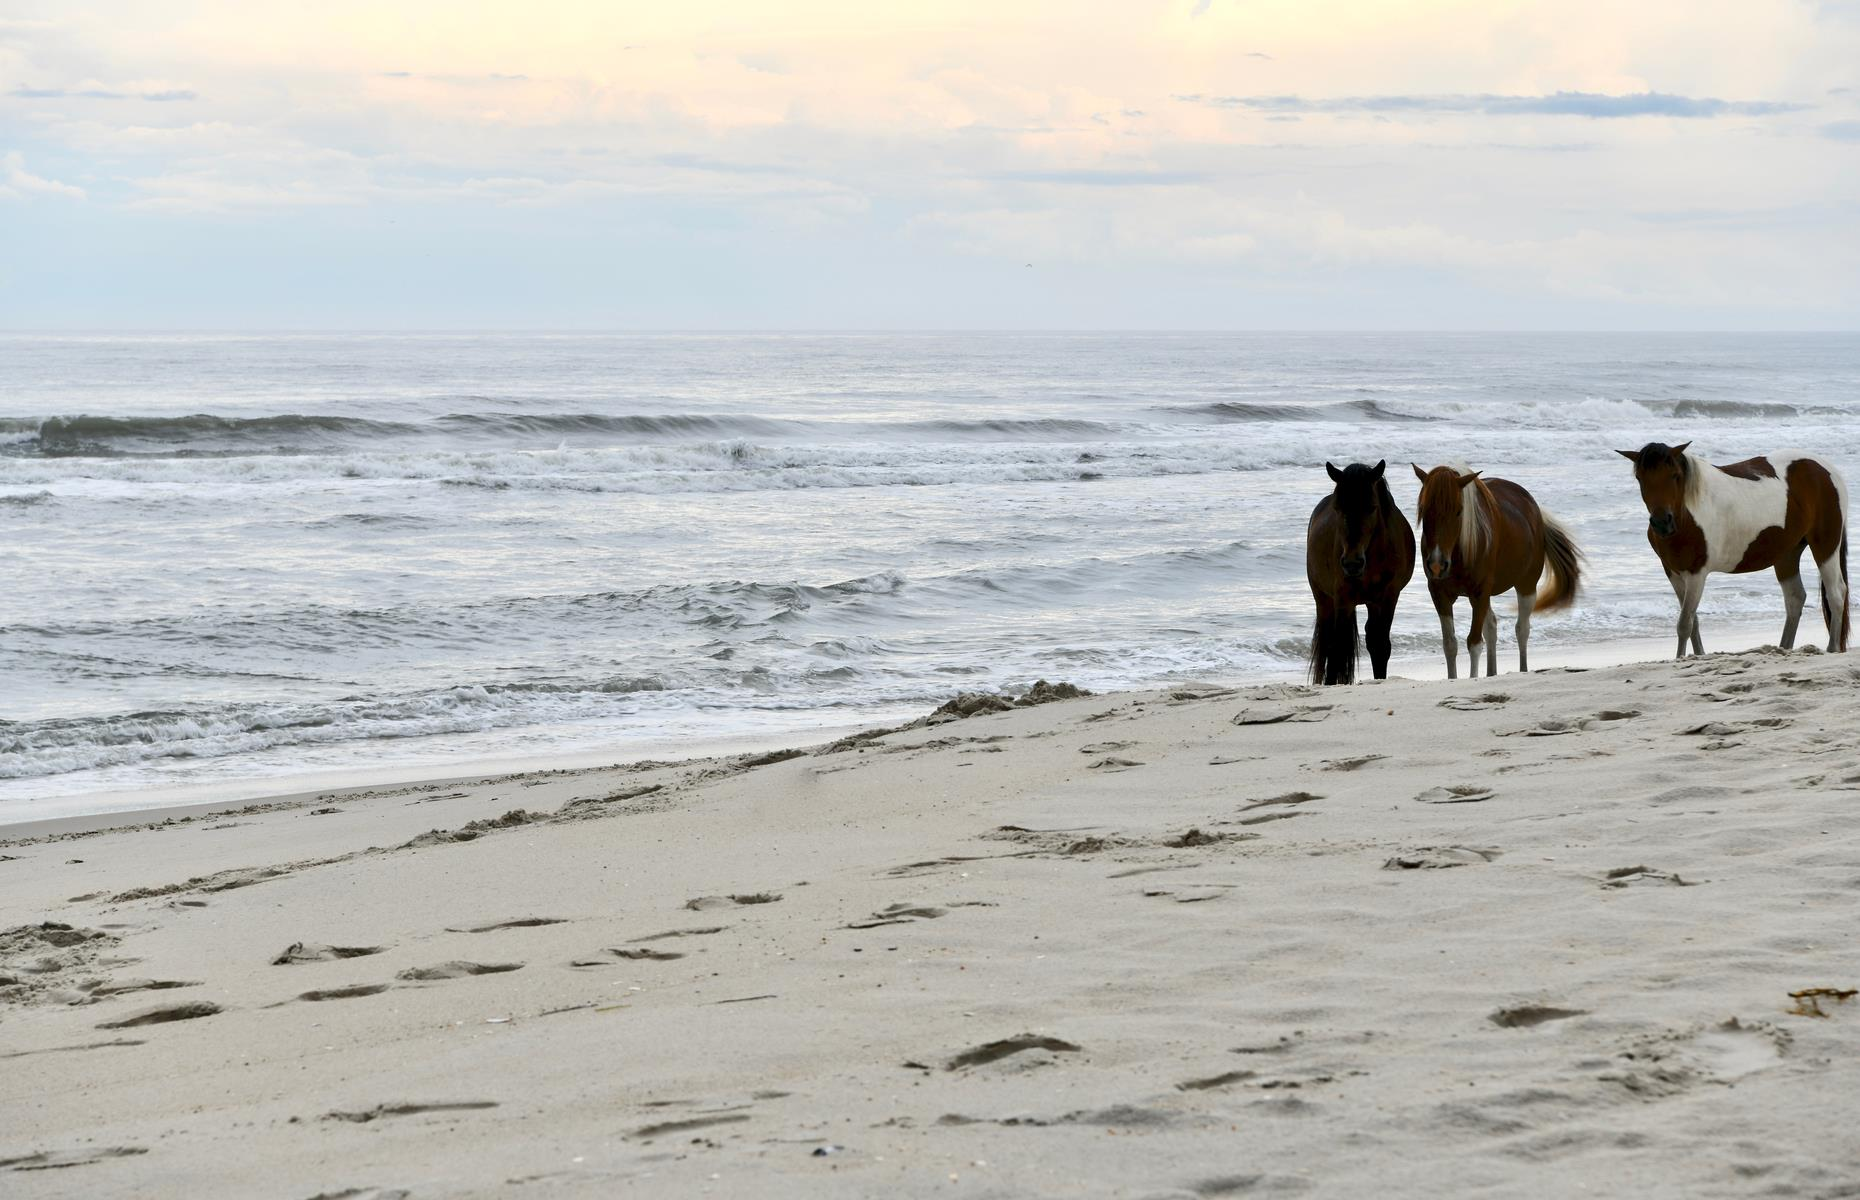 Slide 21 of 32: This barrier island is home to beaches as soft as caster sugar and best-known for its wild ponies. Two herds of feral horses (the wild descendants of domestic animals) thrive here, one managed by the National Park System and one by the Chincoteague Volunteer Fire Company.